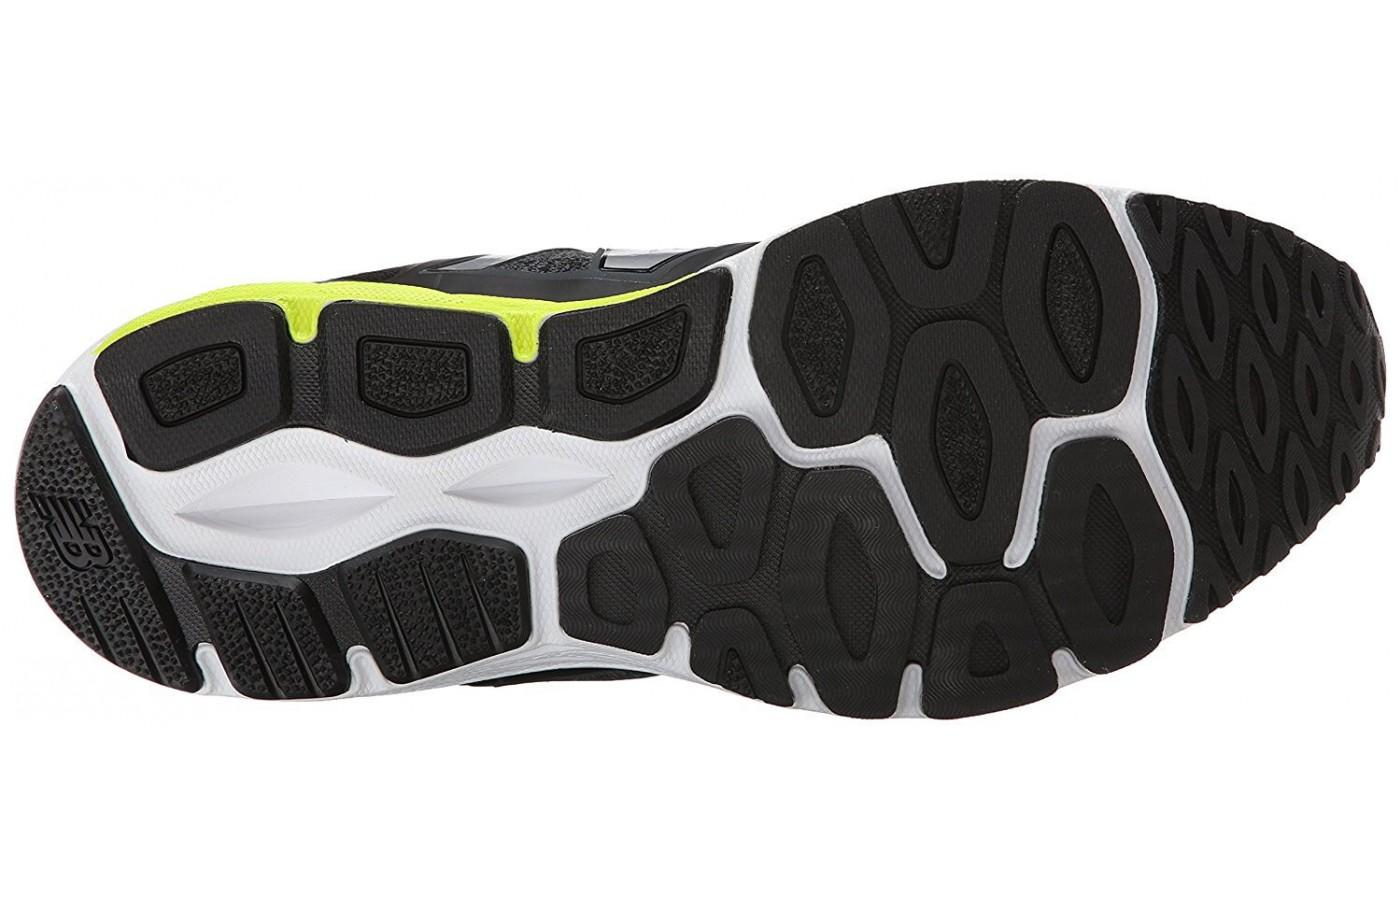 The larger tread gives the New Balance 770 v5 better traction and grip.